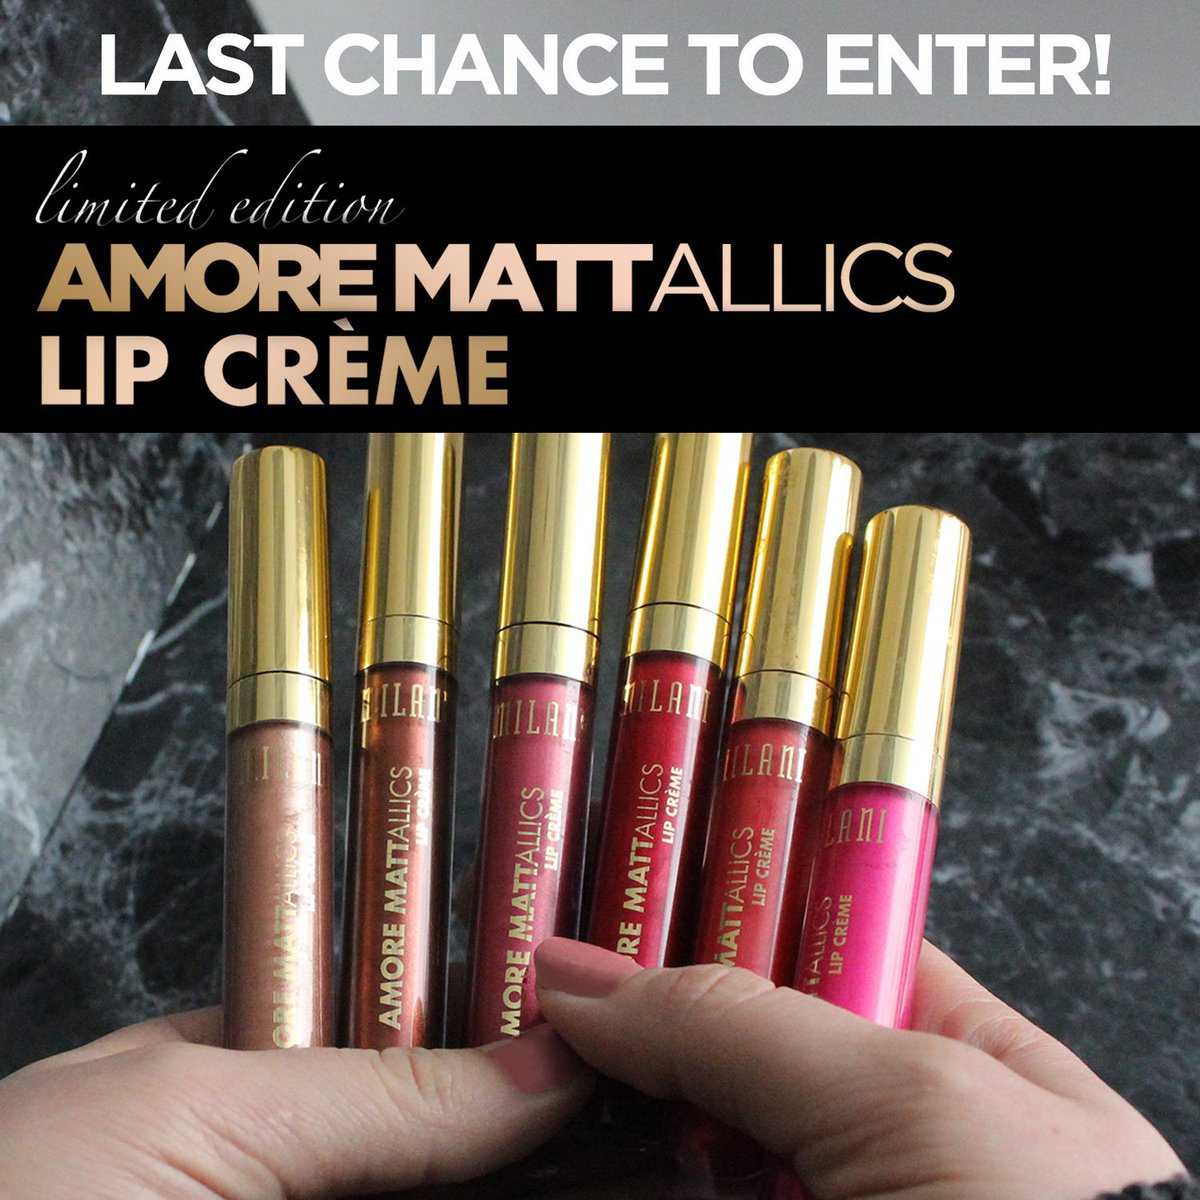 LAST CHANCE to RT your fave shade for your chance to win! US residents only. https://t.co/SZHeFArSCm https://t.co/YeSqD9i9zc